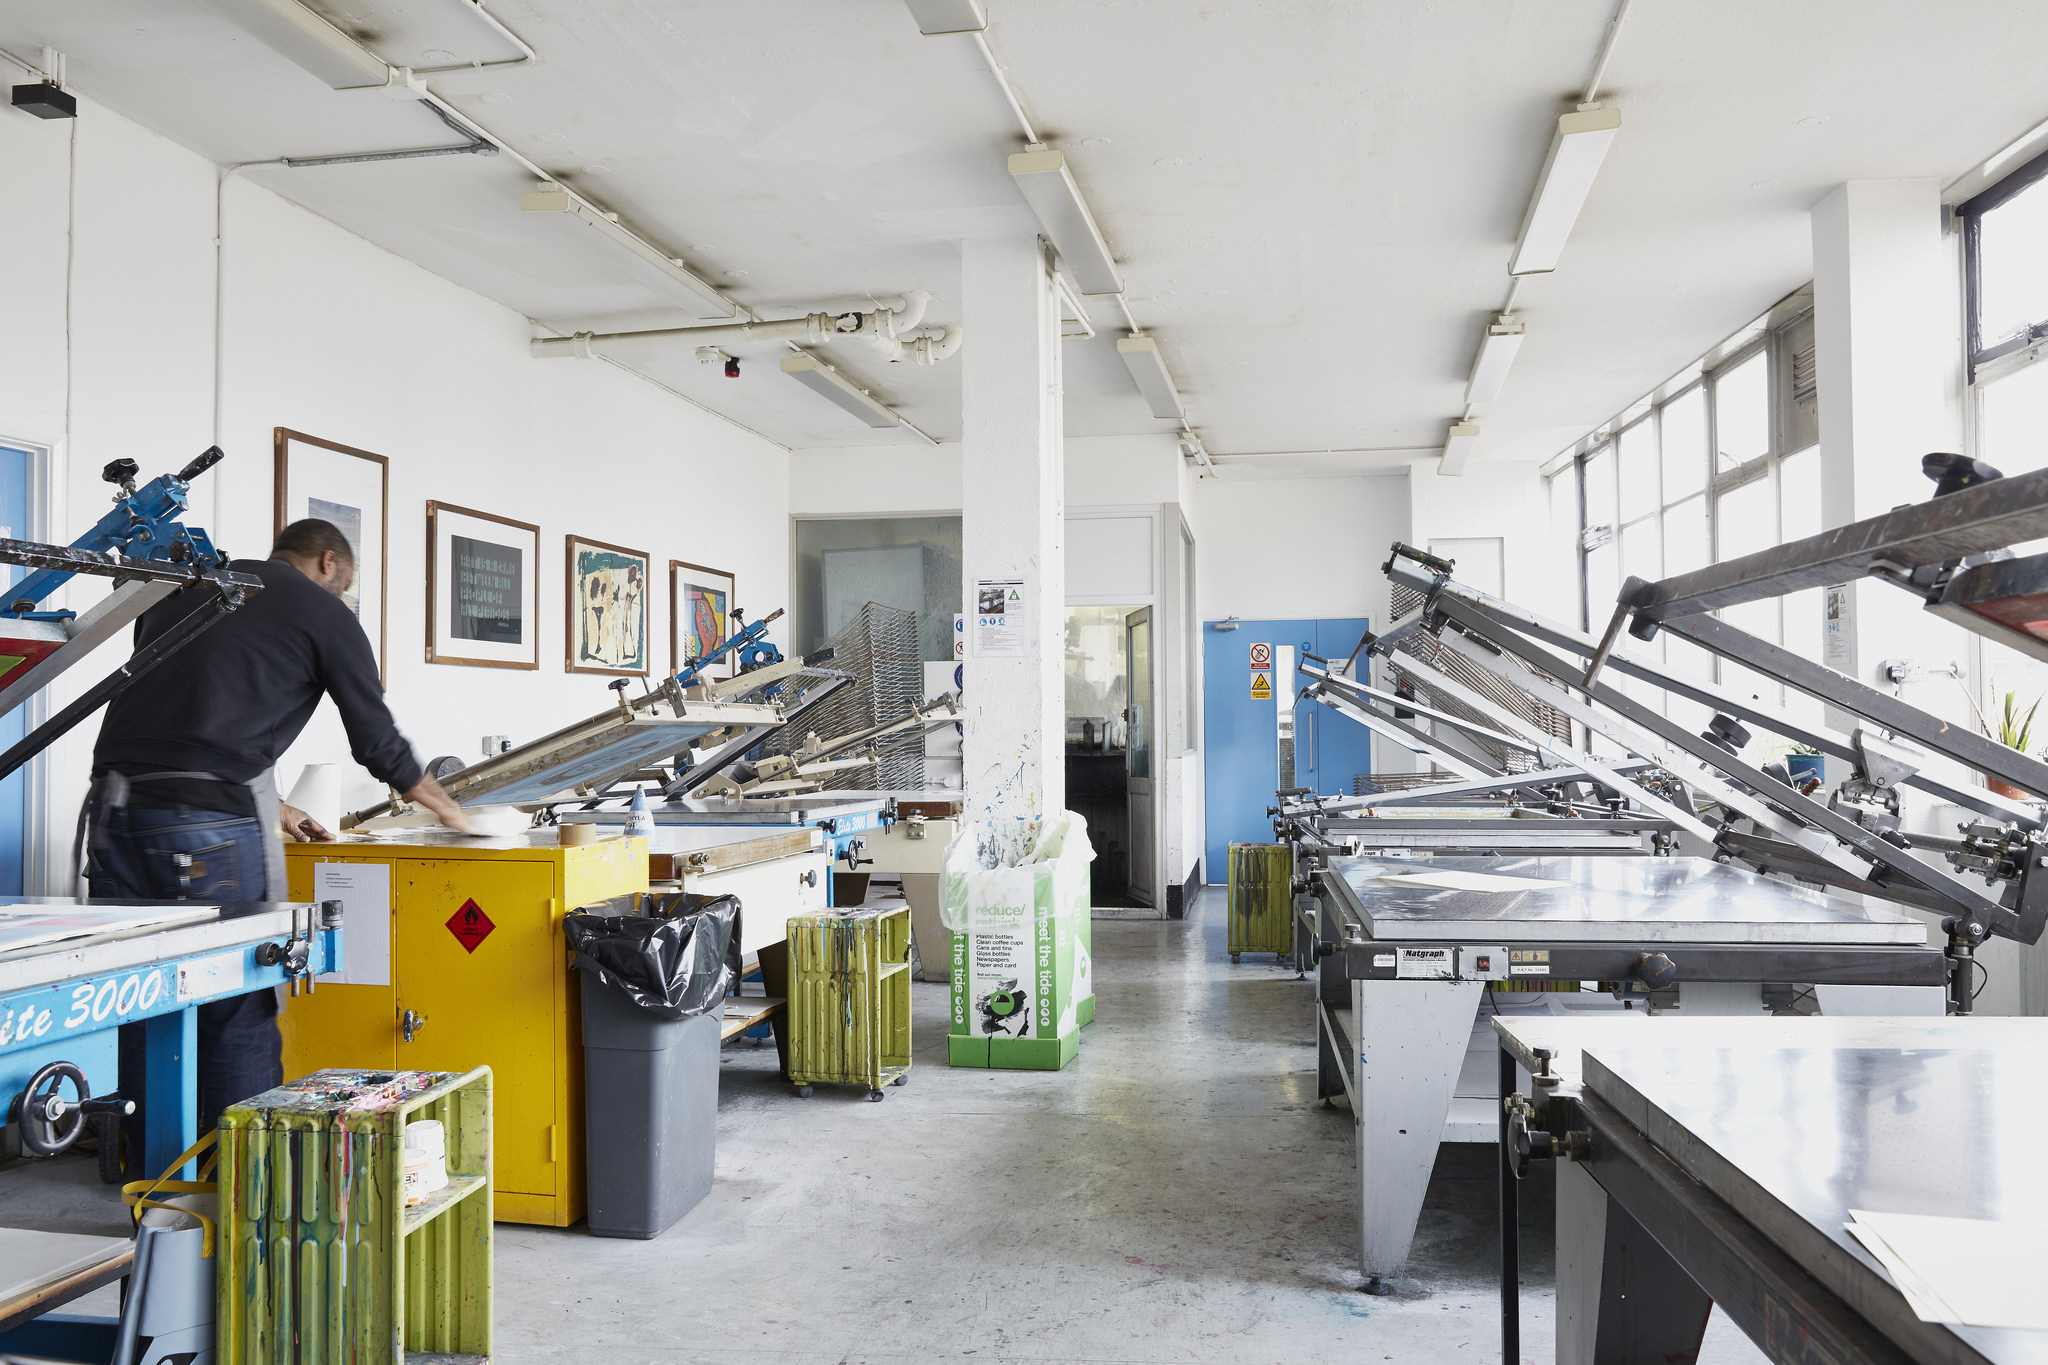 Screen printing facilities at Camberwell, part of the Printmaking Workshops